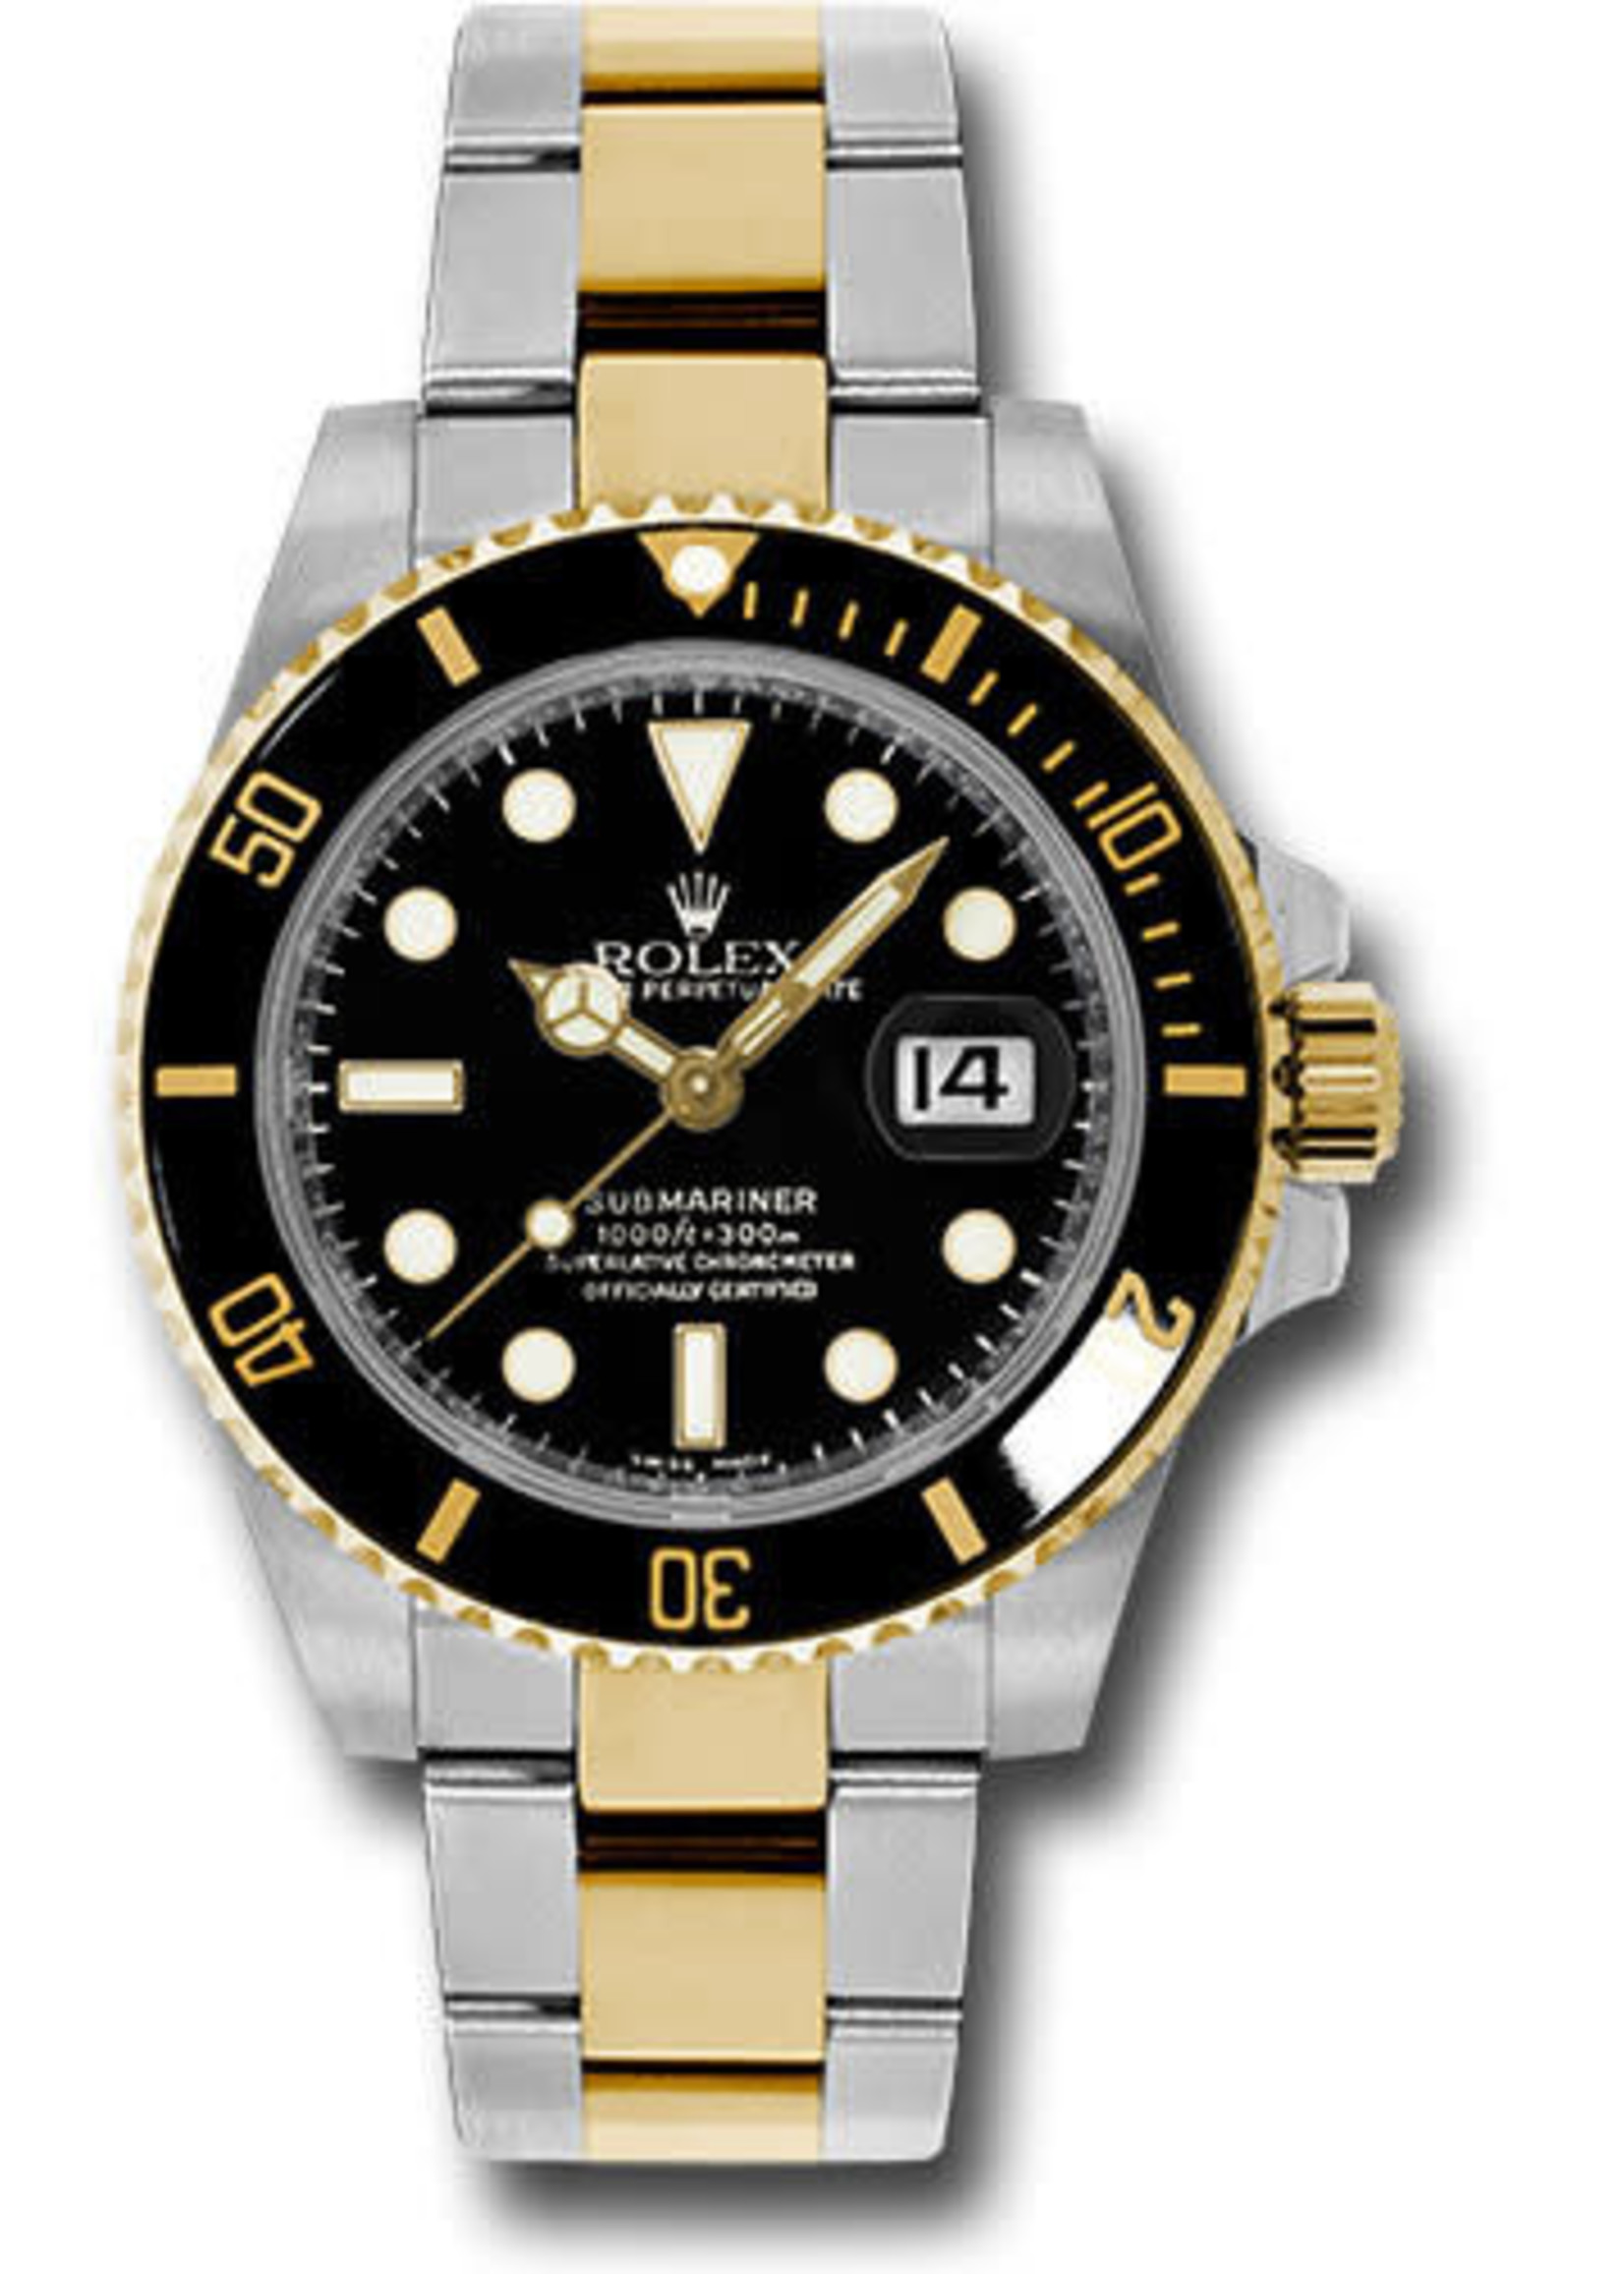 Rolex ROLEX SUBMARINER 40MM (2016 B+P) #116613LN